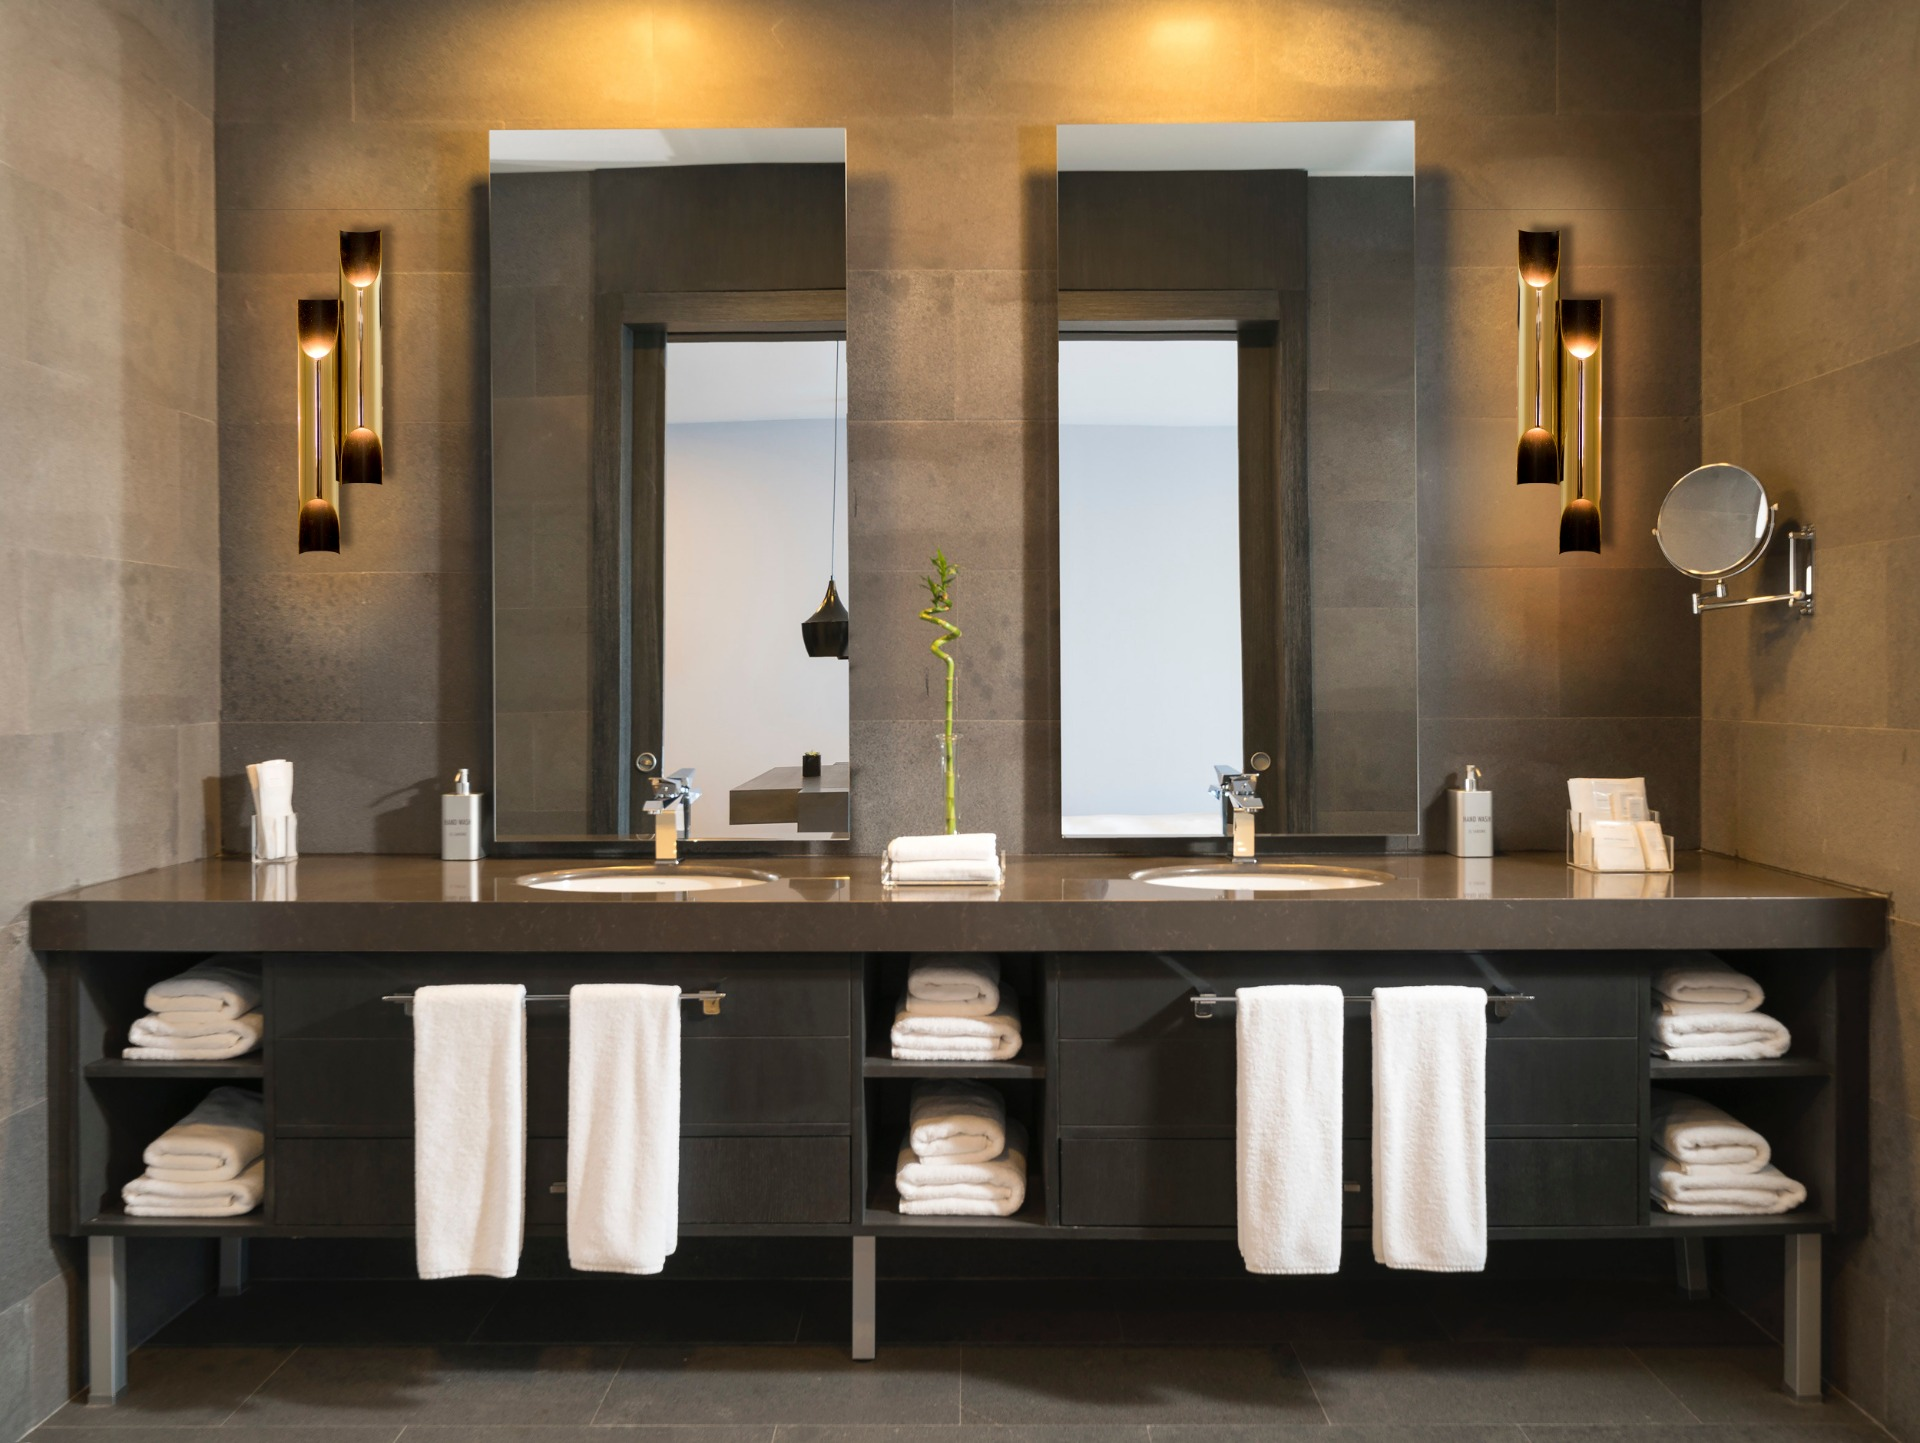 Modish bathroom featuring the Galliano Wall Lamp from DelightFULL